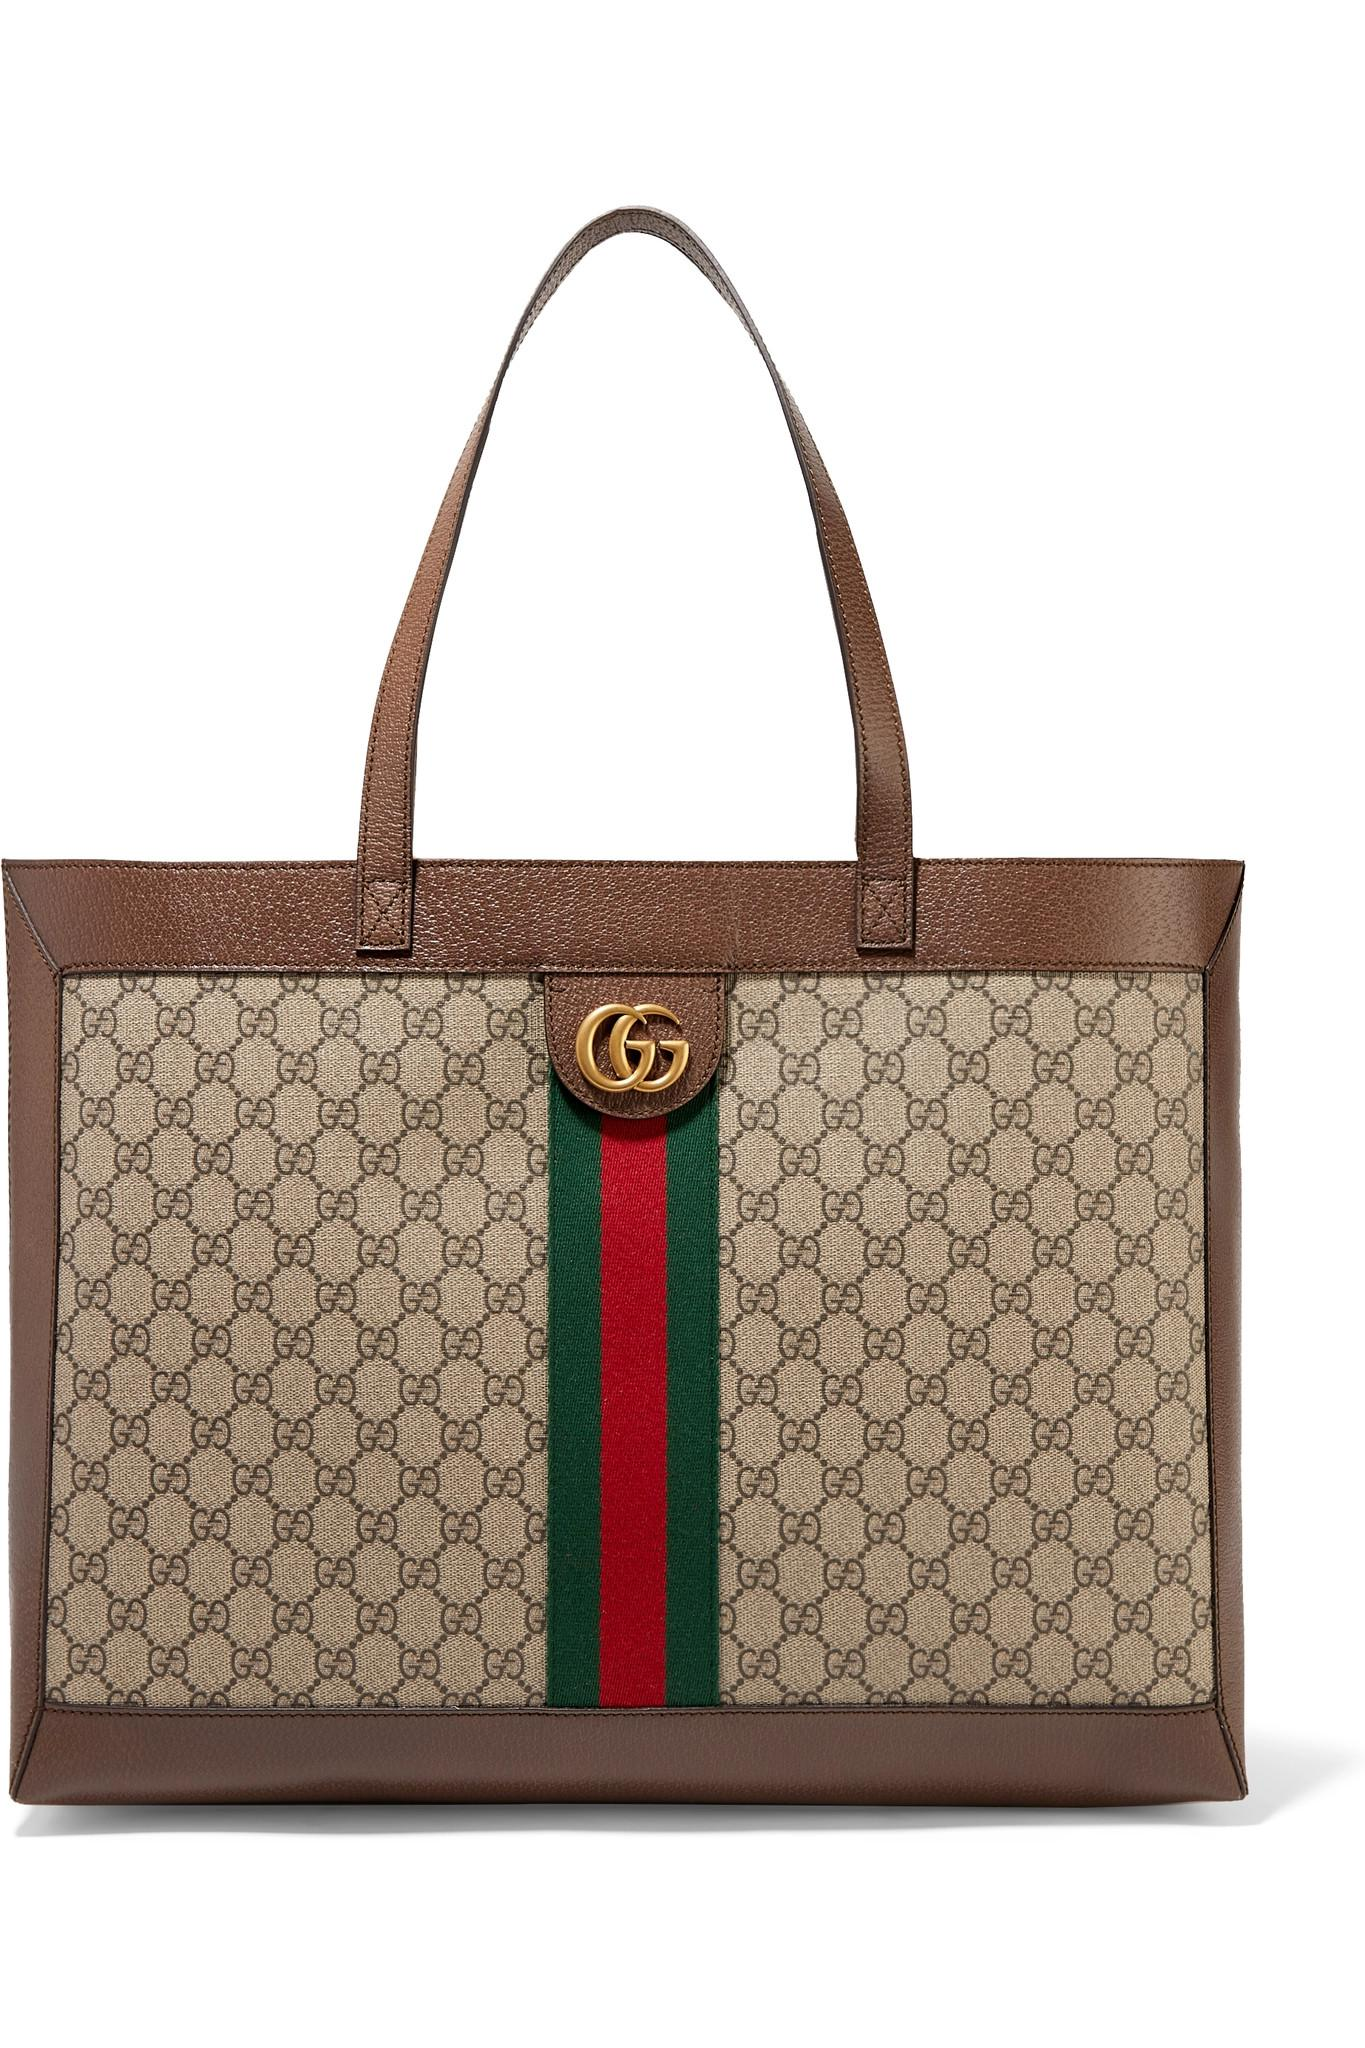 568dd6f5cef9 Gucci. Women's Natural Ophidia Textured Leather-trimmed Printed Coated-canvas  Tote